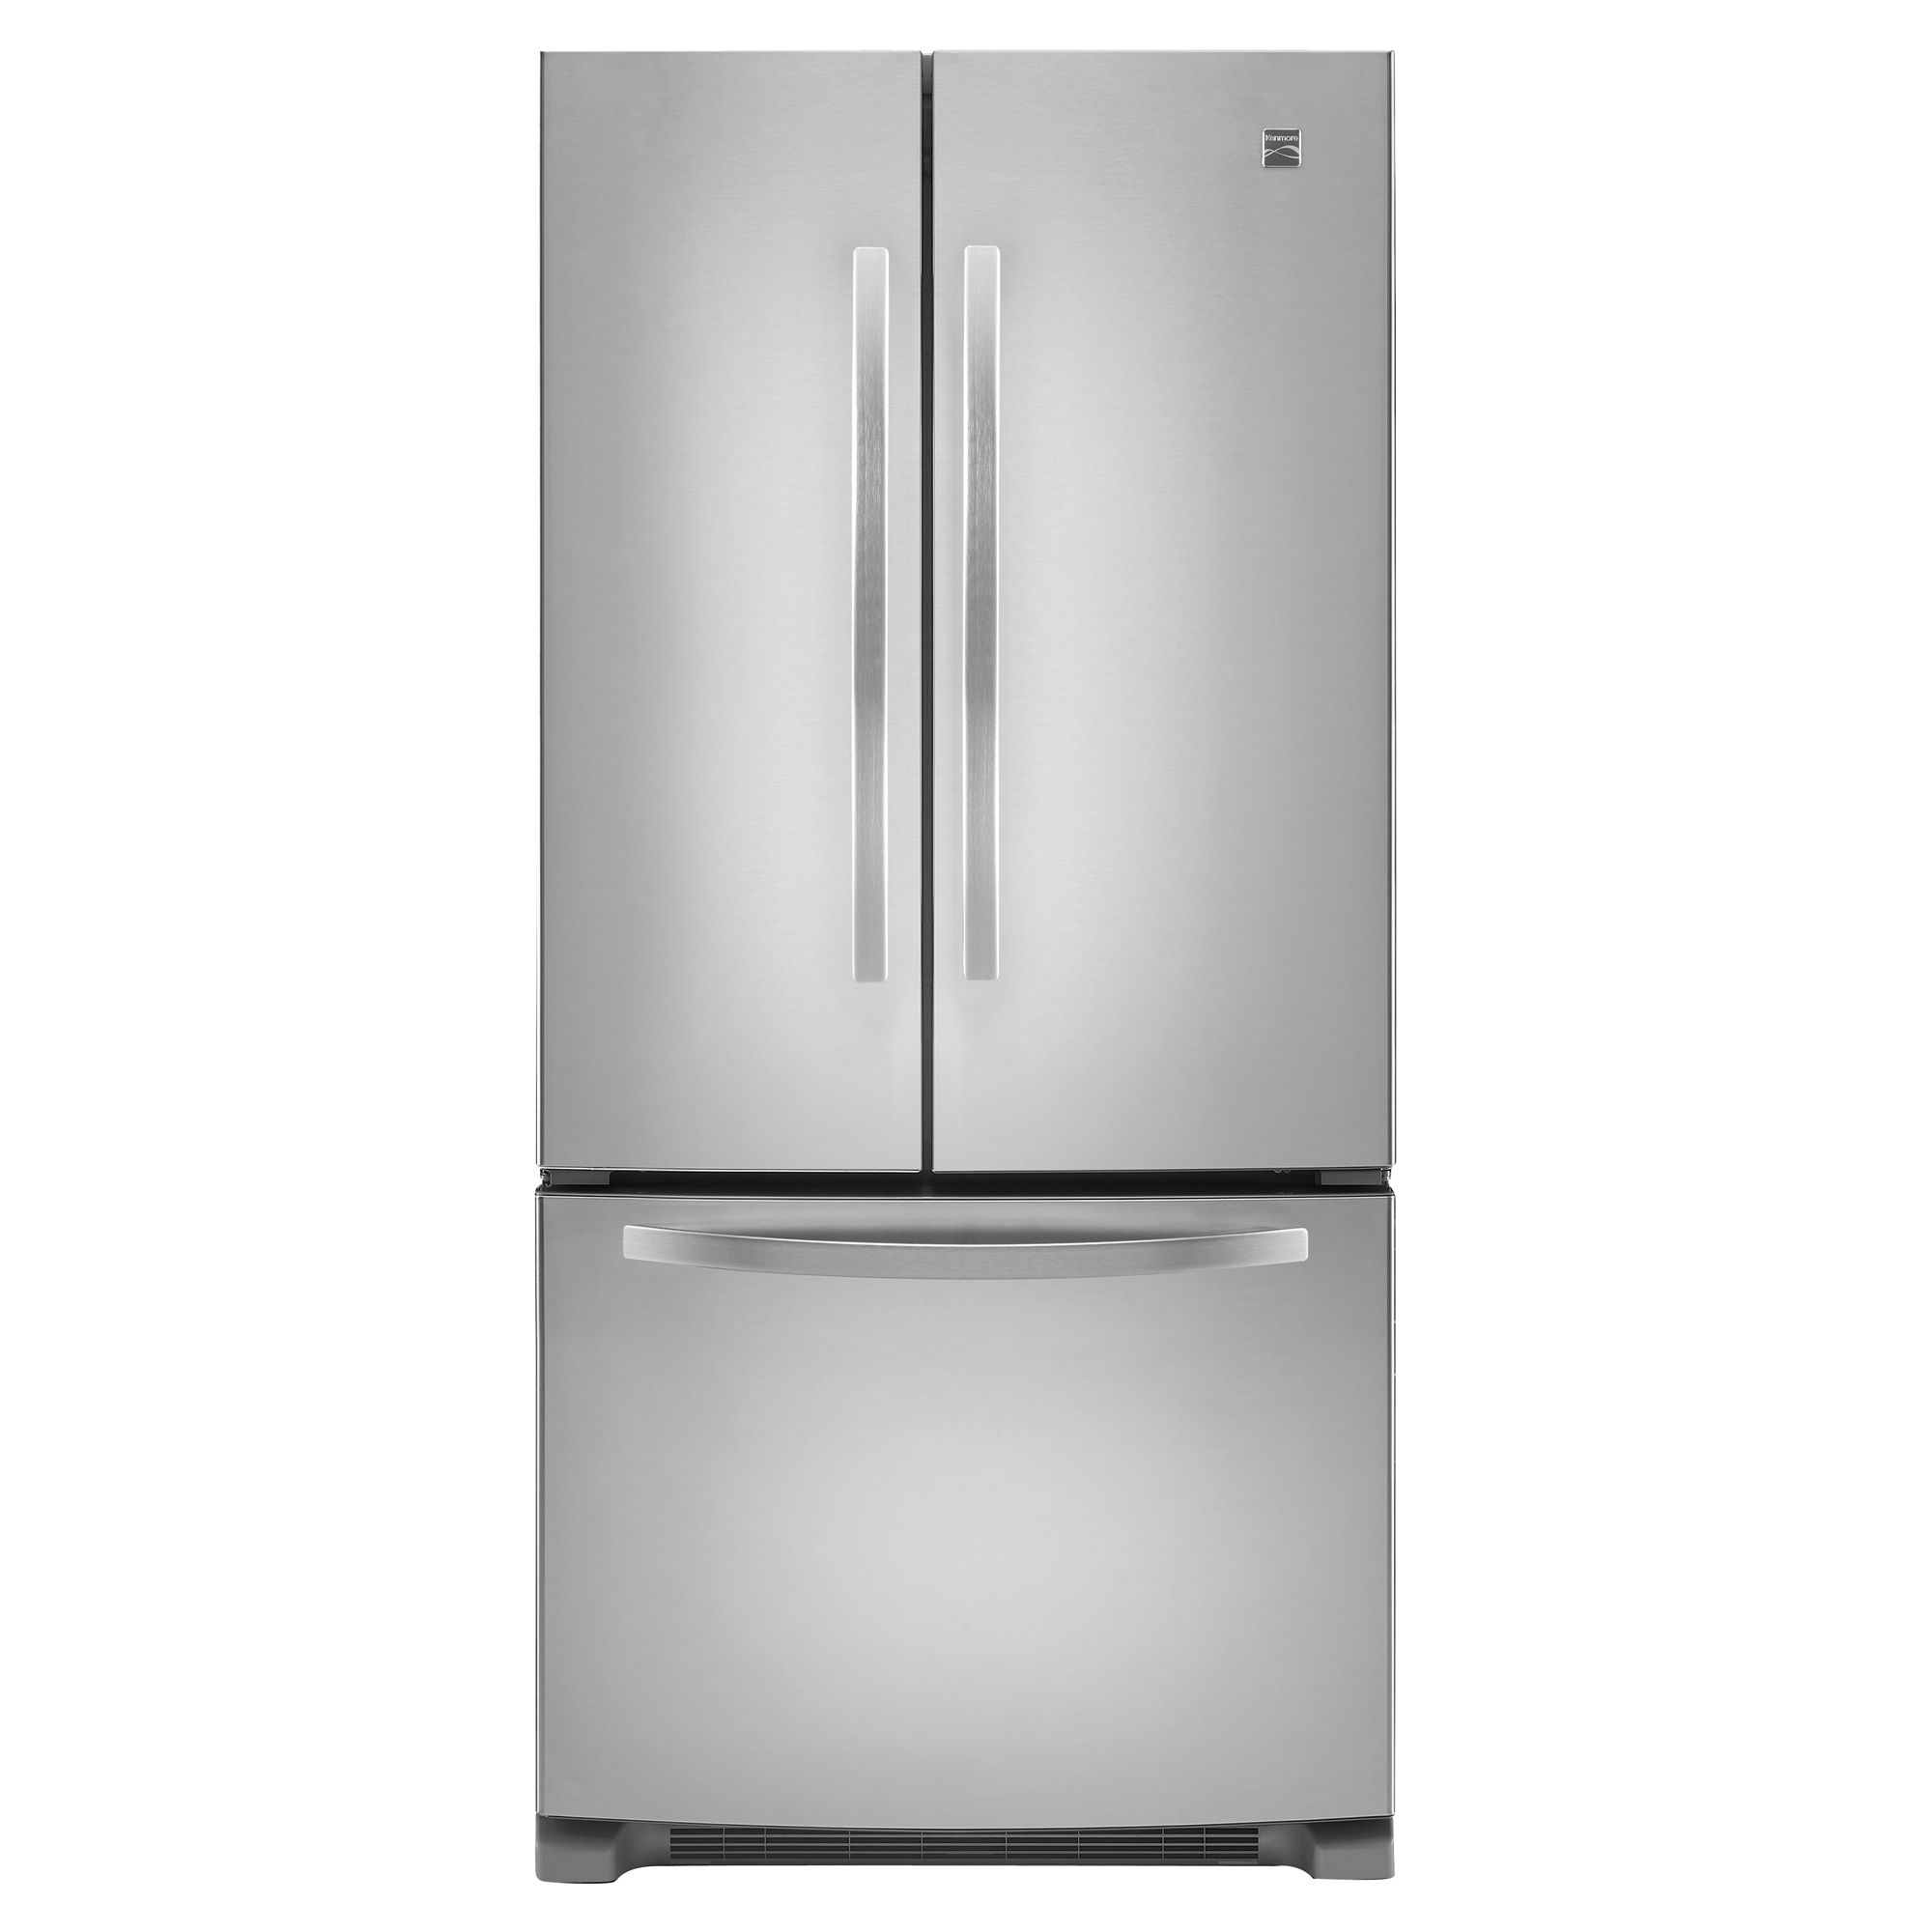 prod_2041914112?wid=200&hei=250 kenmore model 106 refrigerator the best refrigerator 2017 kenmore coldspot 106 wiring diagram at reclaimingppi.co